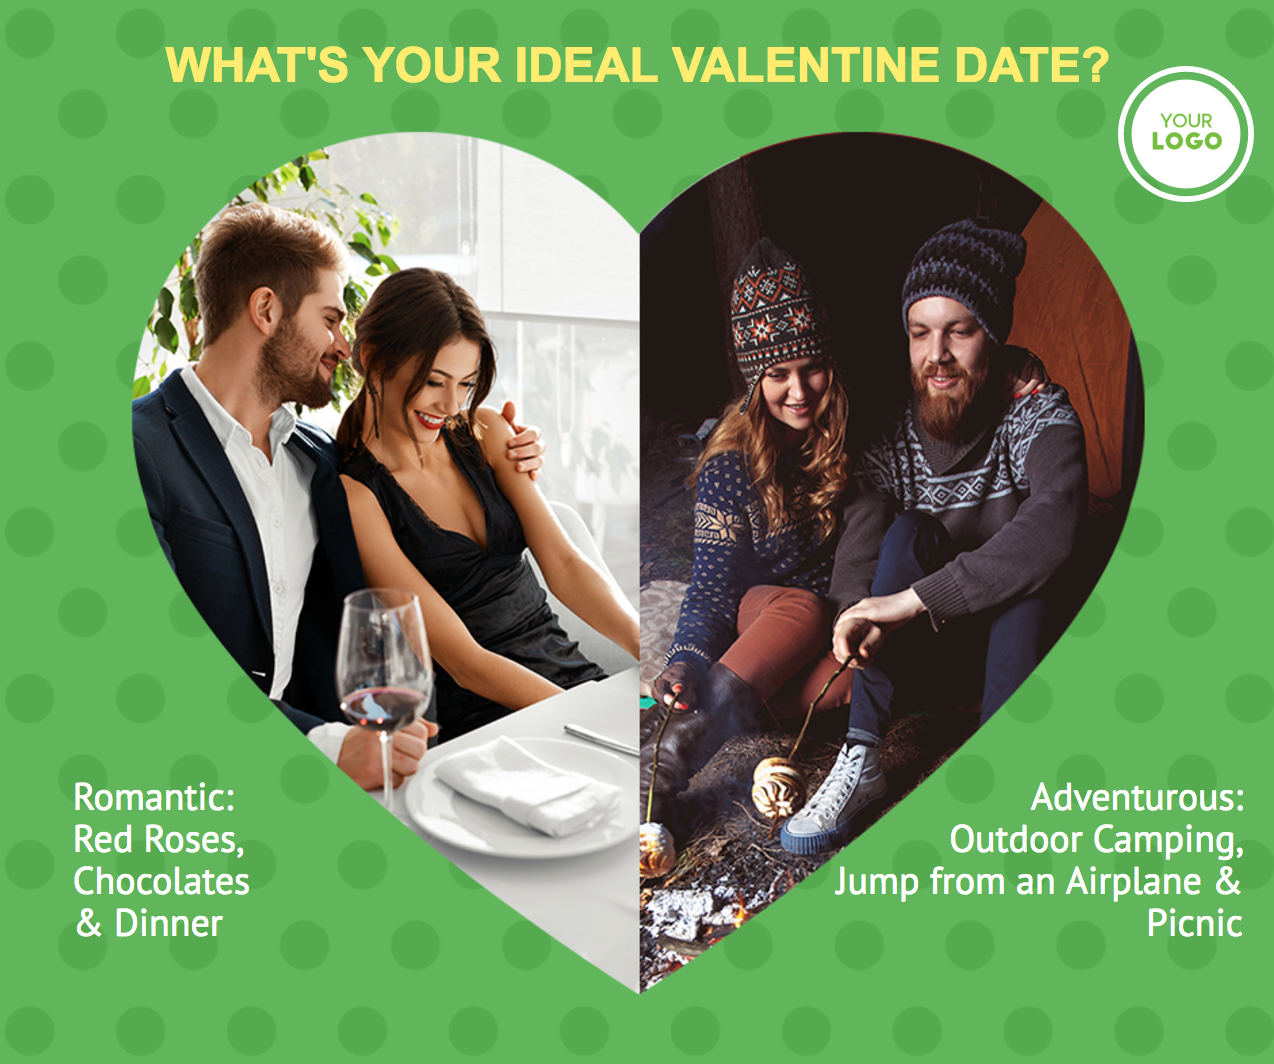 what's your ideal valentine date, quizz